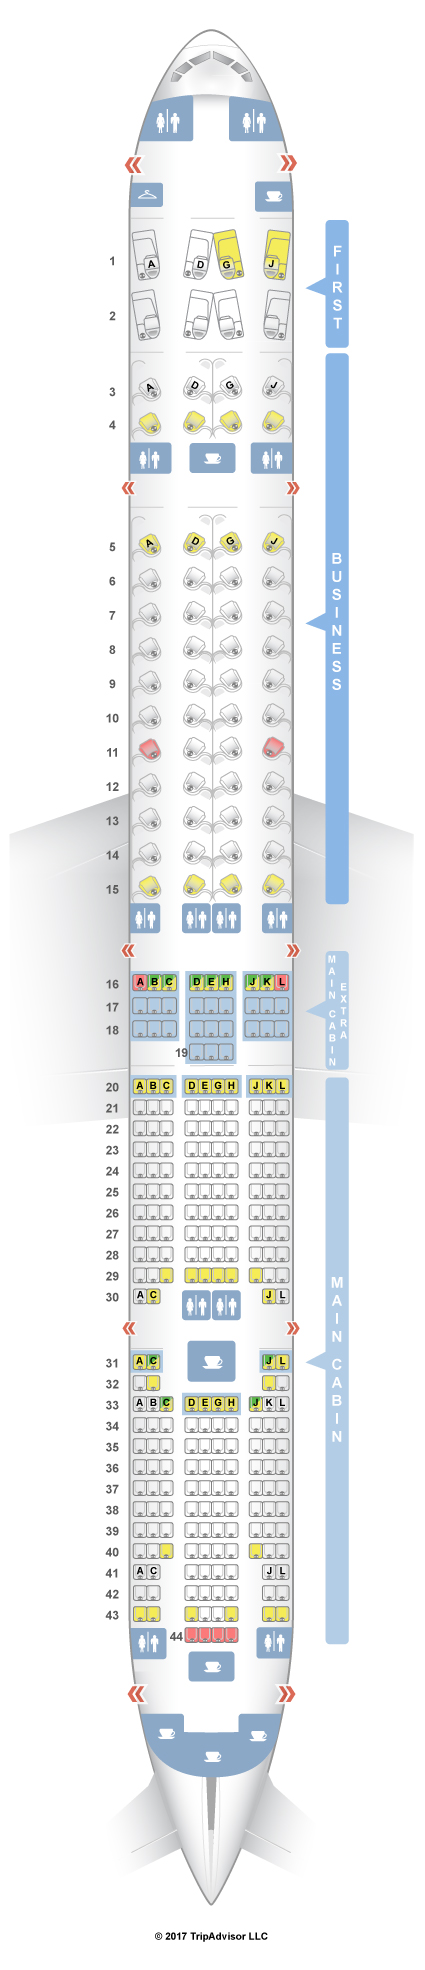 boeing 777 300 seat map with American Airlines 777 300 Er on Trip Report China Airlines 777 300er Economy Class November 2014 likewise Review Cathay Pacific A350 Business Class Hkg Dus together with China Eastern Brings First Class Boeing 777 To Sydney Melbourne additionally Plan Cabine LC Plan B777 200 316 Best in addition Qatar Airways Boeing B777 300er 358pax.